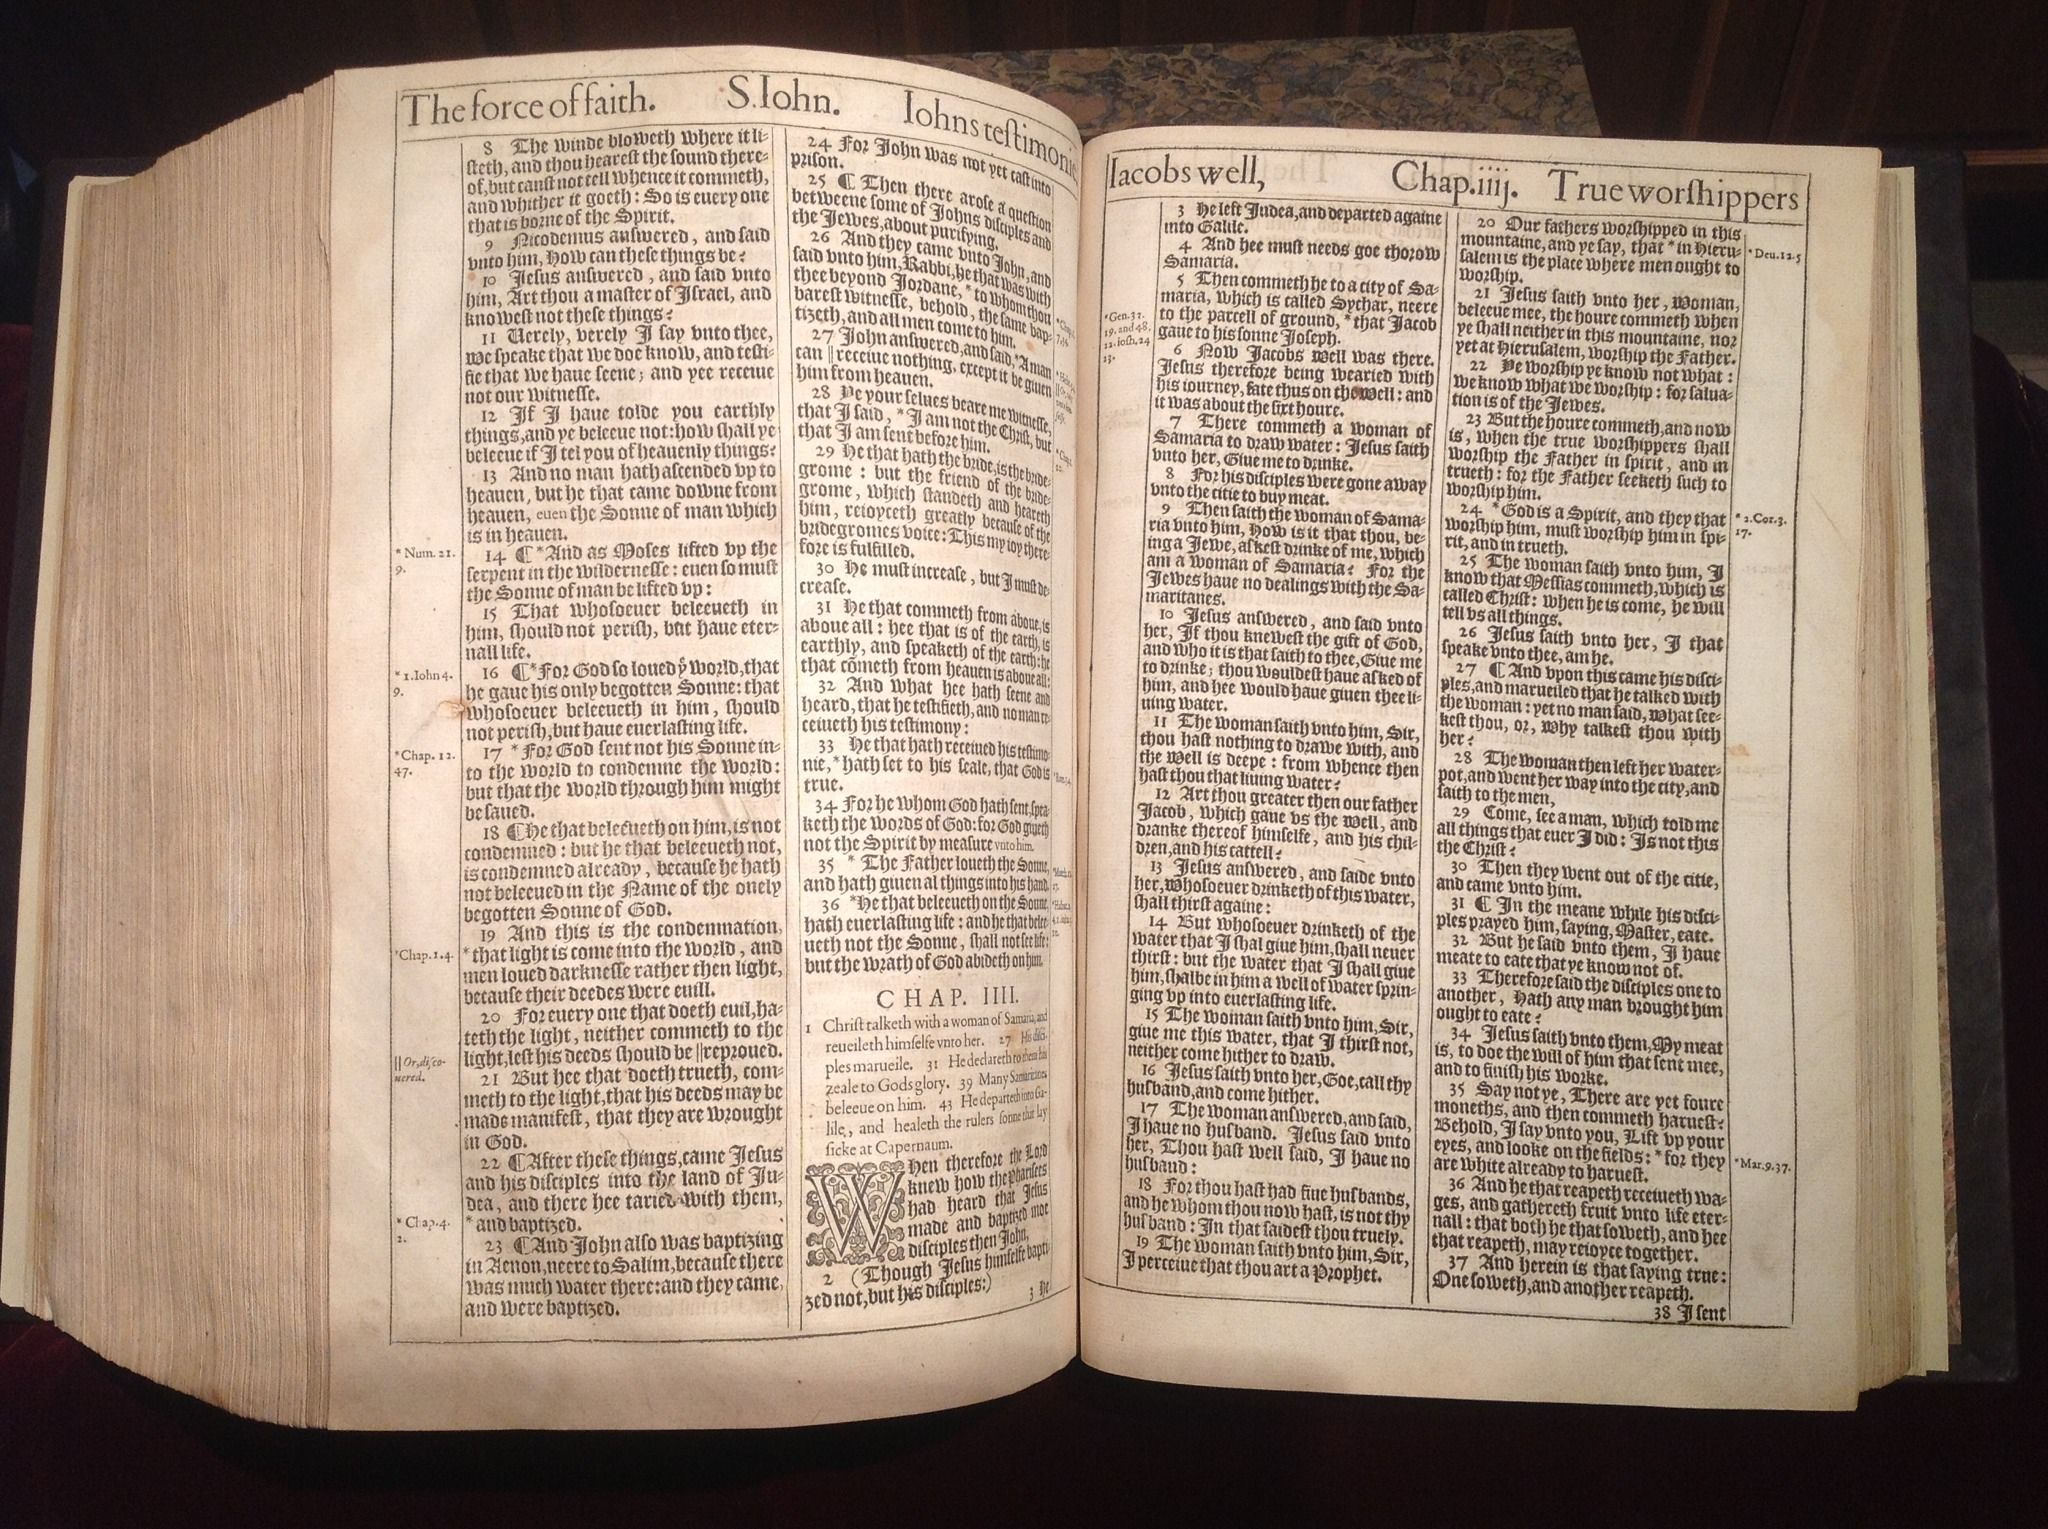 John 3 16 And Surrounding Verses From A 1611 King James Bible 1611 King James Bible King James Bible Bible